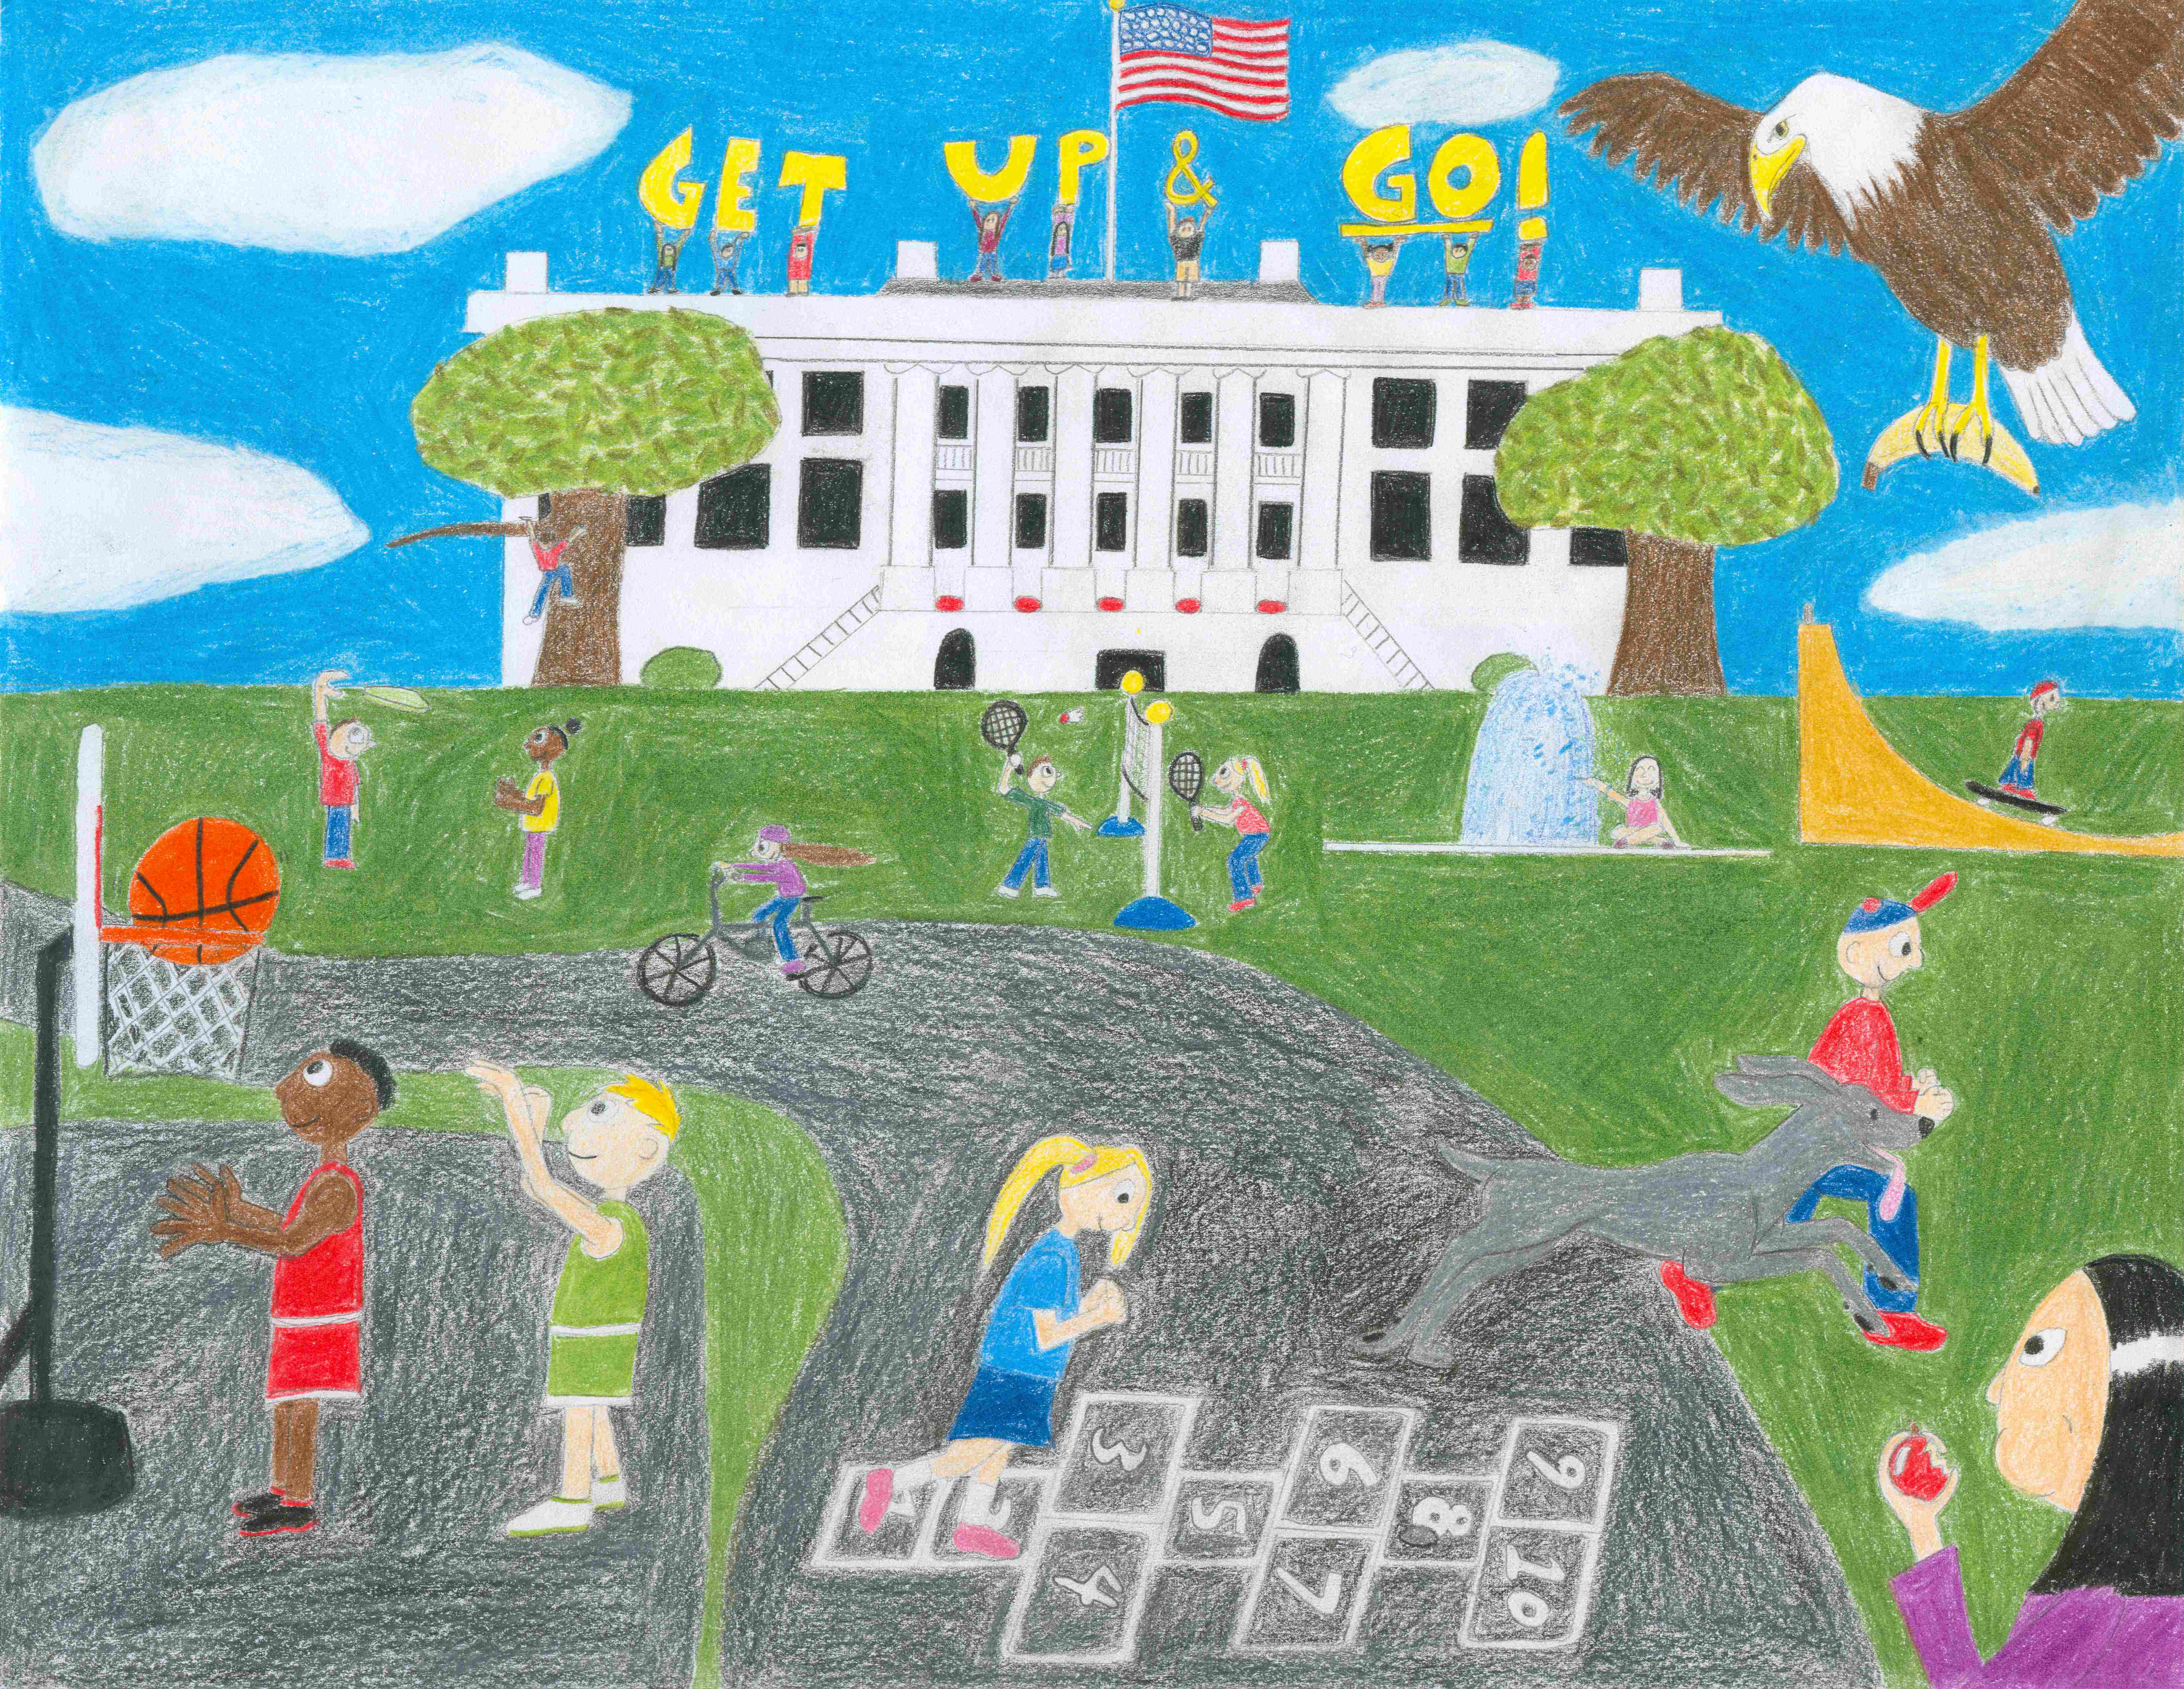 Easter Egg Roll cover artwork co-winner selected was created by Alyssa Pendergast